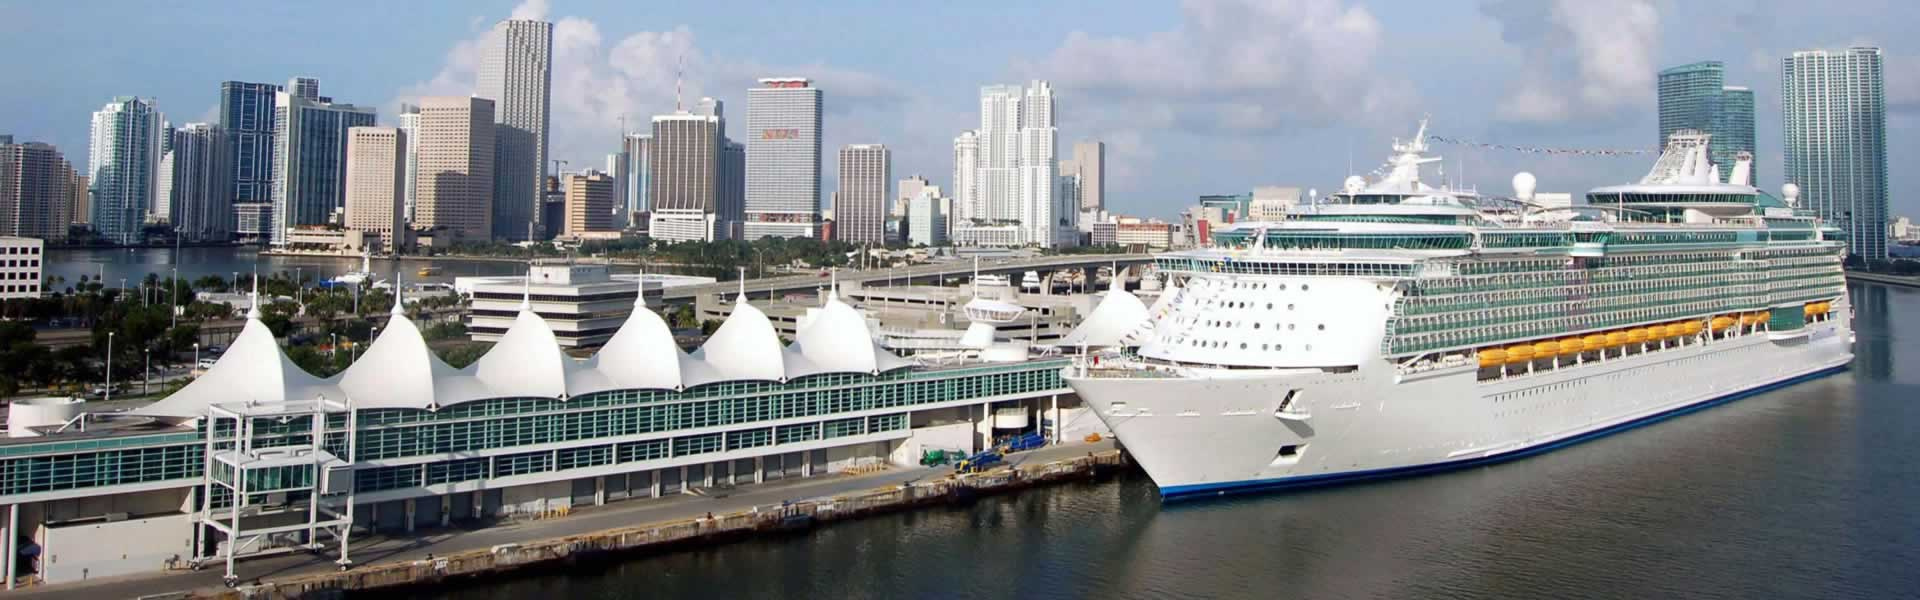 Hotels Near Cruise Ship Port Tampa Florida